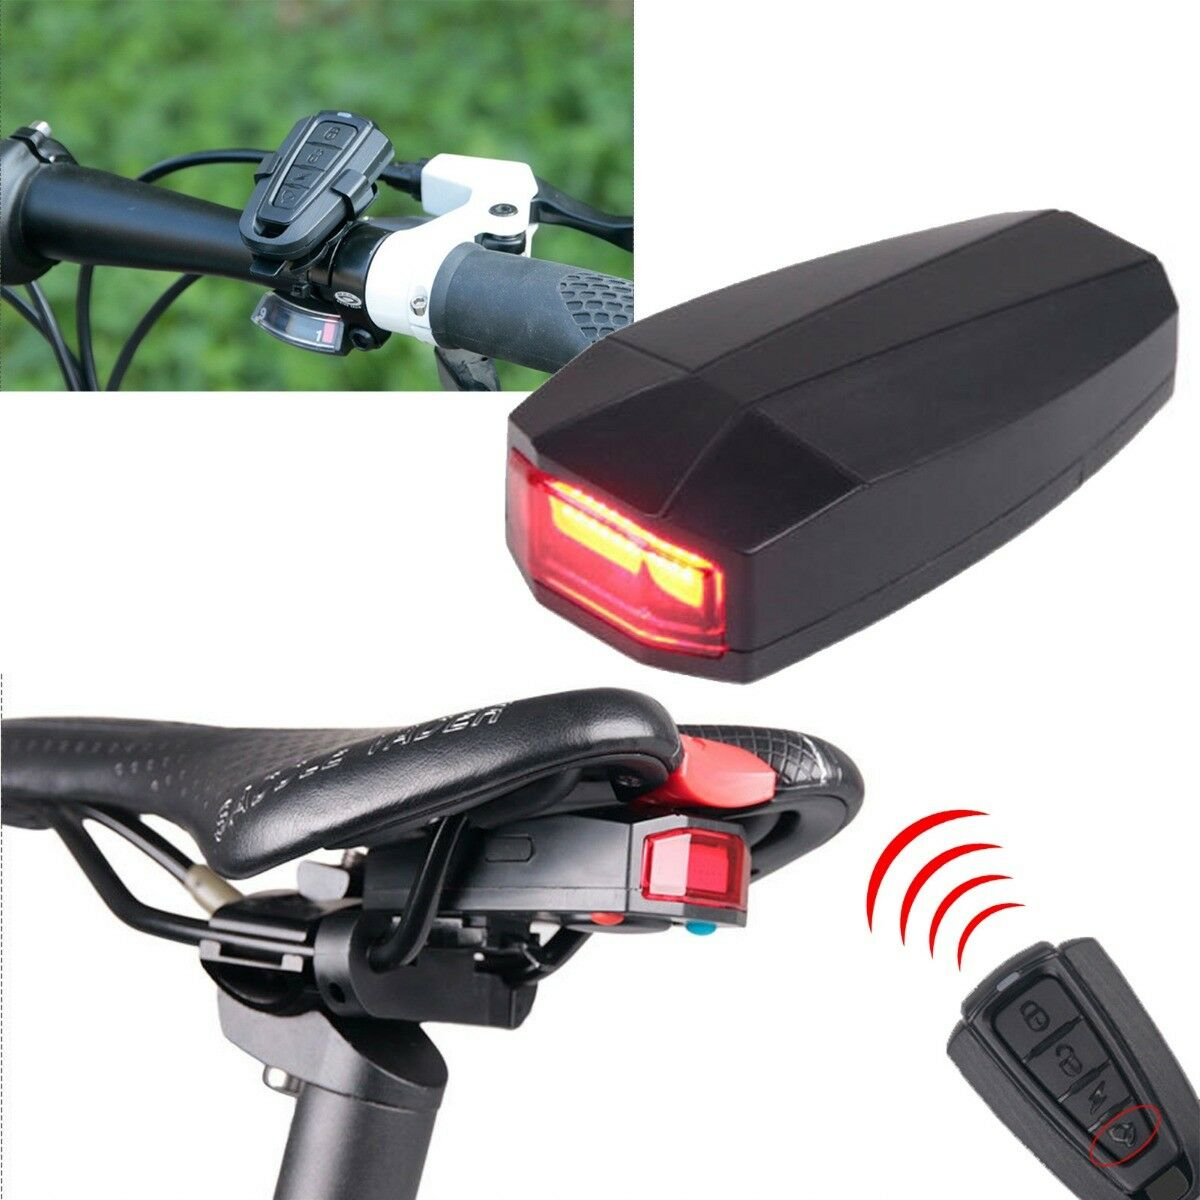 Bicycle Remote Control Alarm Sensor Bike Motorcycle Security Anti-theft System